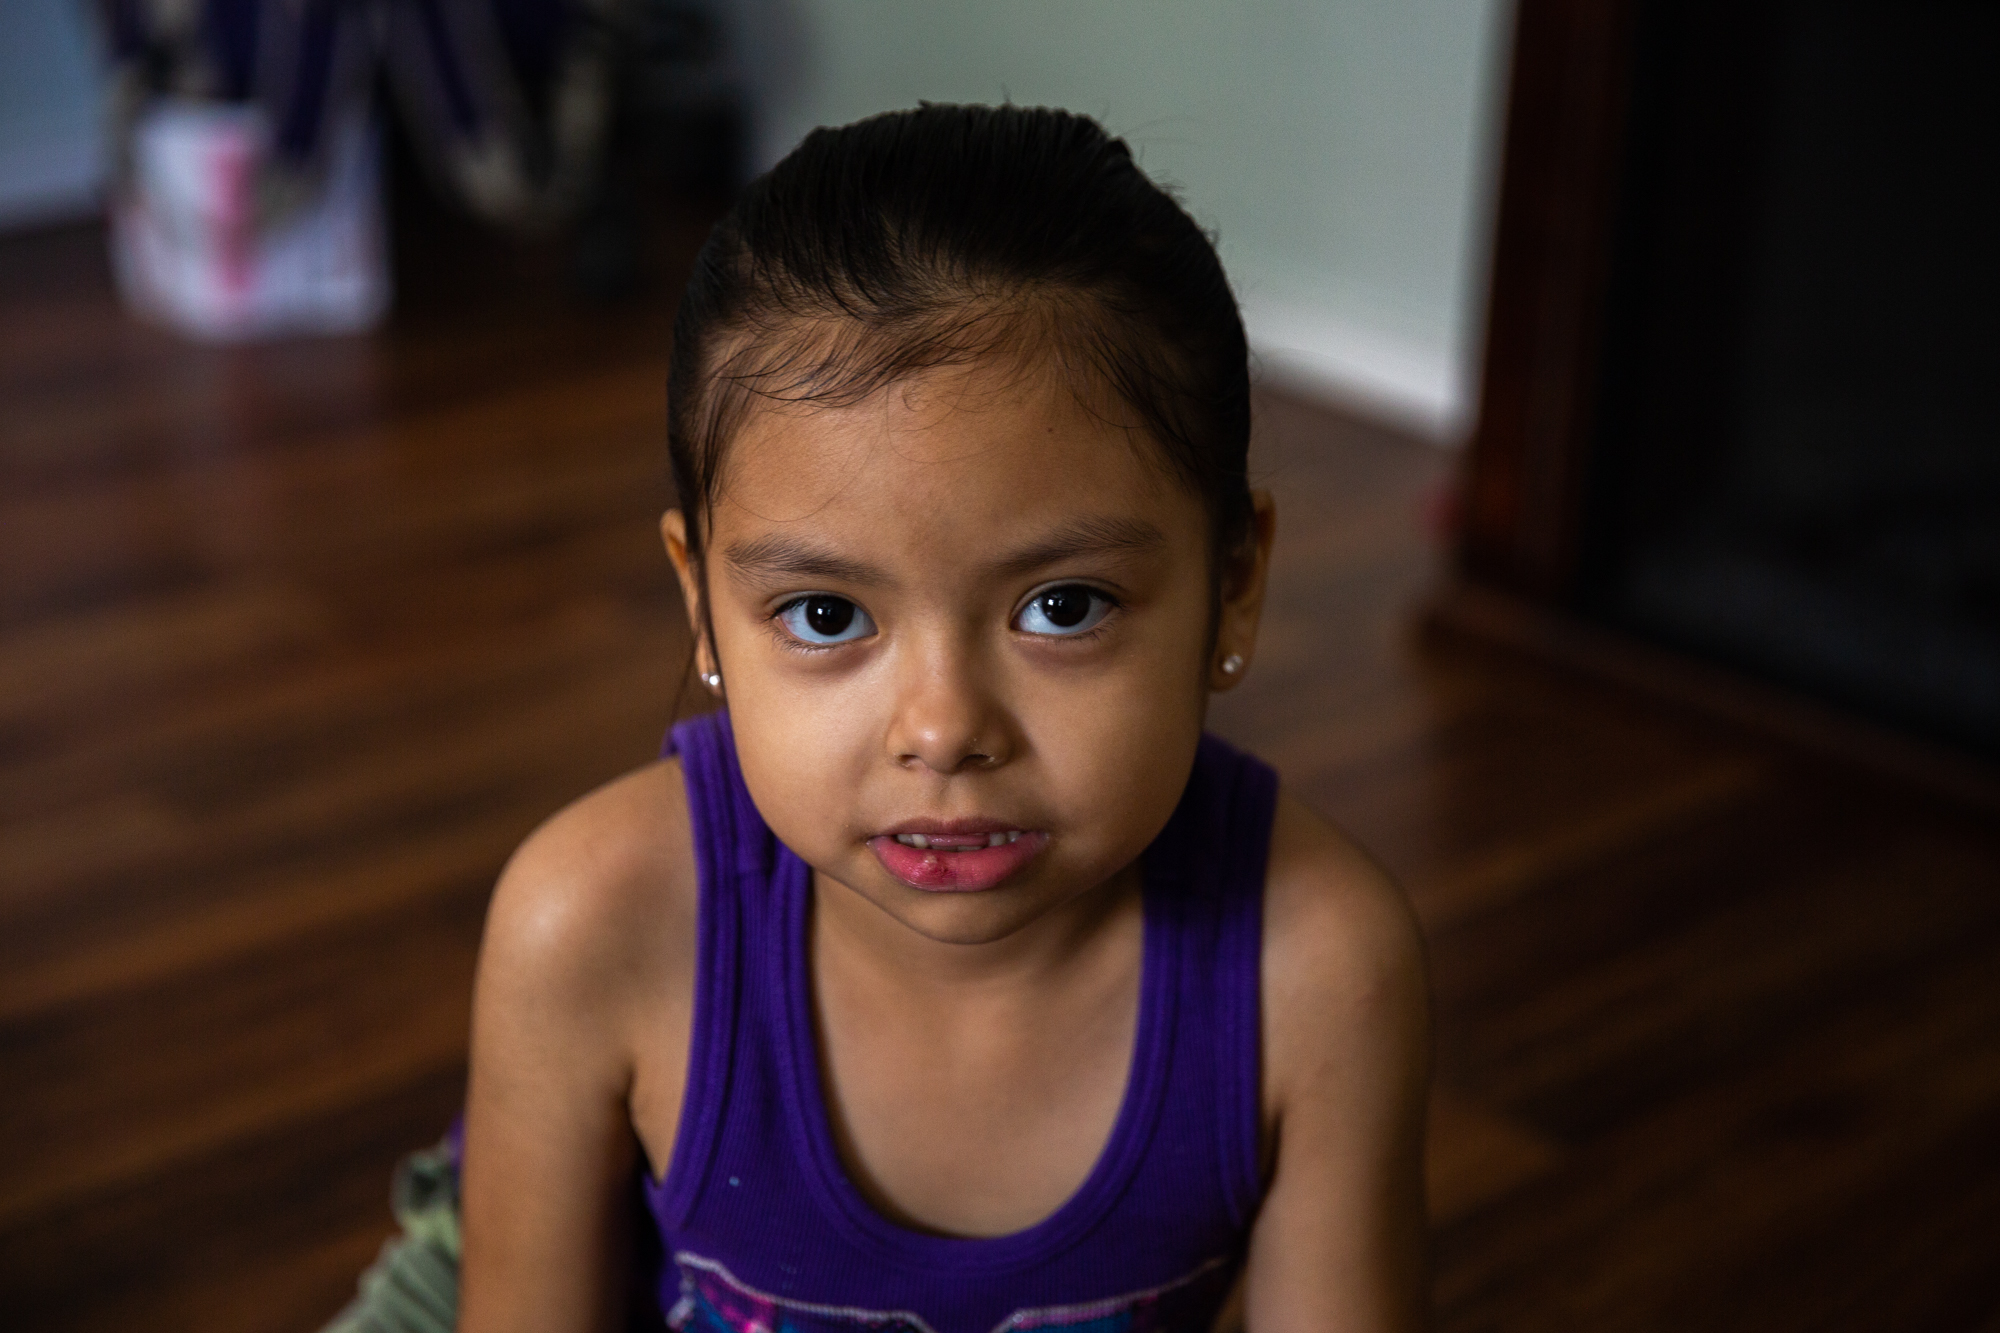 Ester Escobedo - Ester Escobedo's mother, Ruth Escobedo, worries that the poor condition of her house will negatively affect the health of her two daughters, Ester, 6, and Mia, 1. Hurricane Harvey damaged the foundation and left behind mold, cracked floorboards and uneven concrete pathways. (Rachel Farrell/News21)